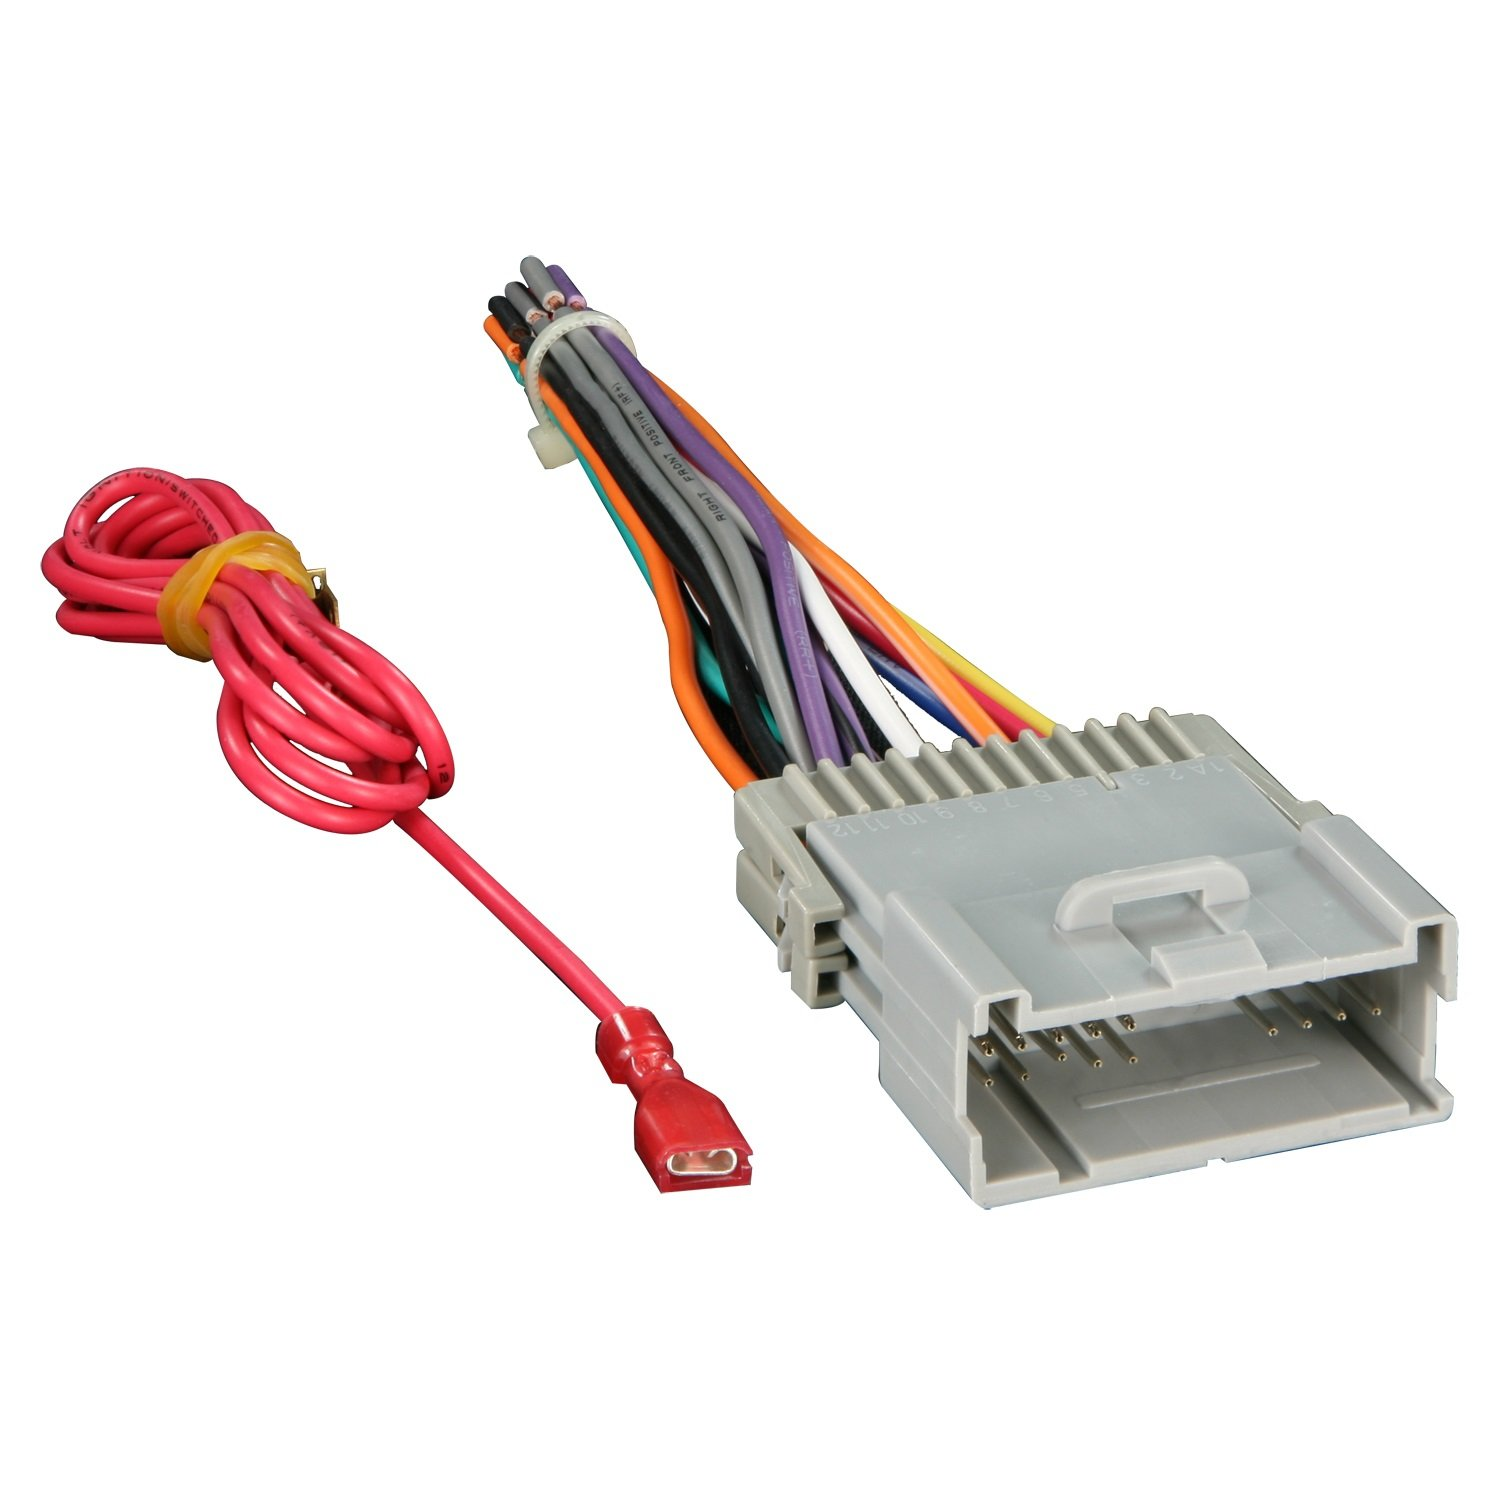 61eewxp9orL._SL1500_ amazon com metra 70 2003 radio wiring harness for gm 98 08 GM Wiring Color Codes at webbmarketing.co